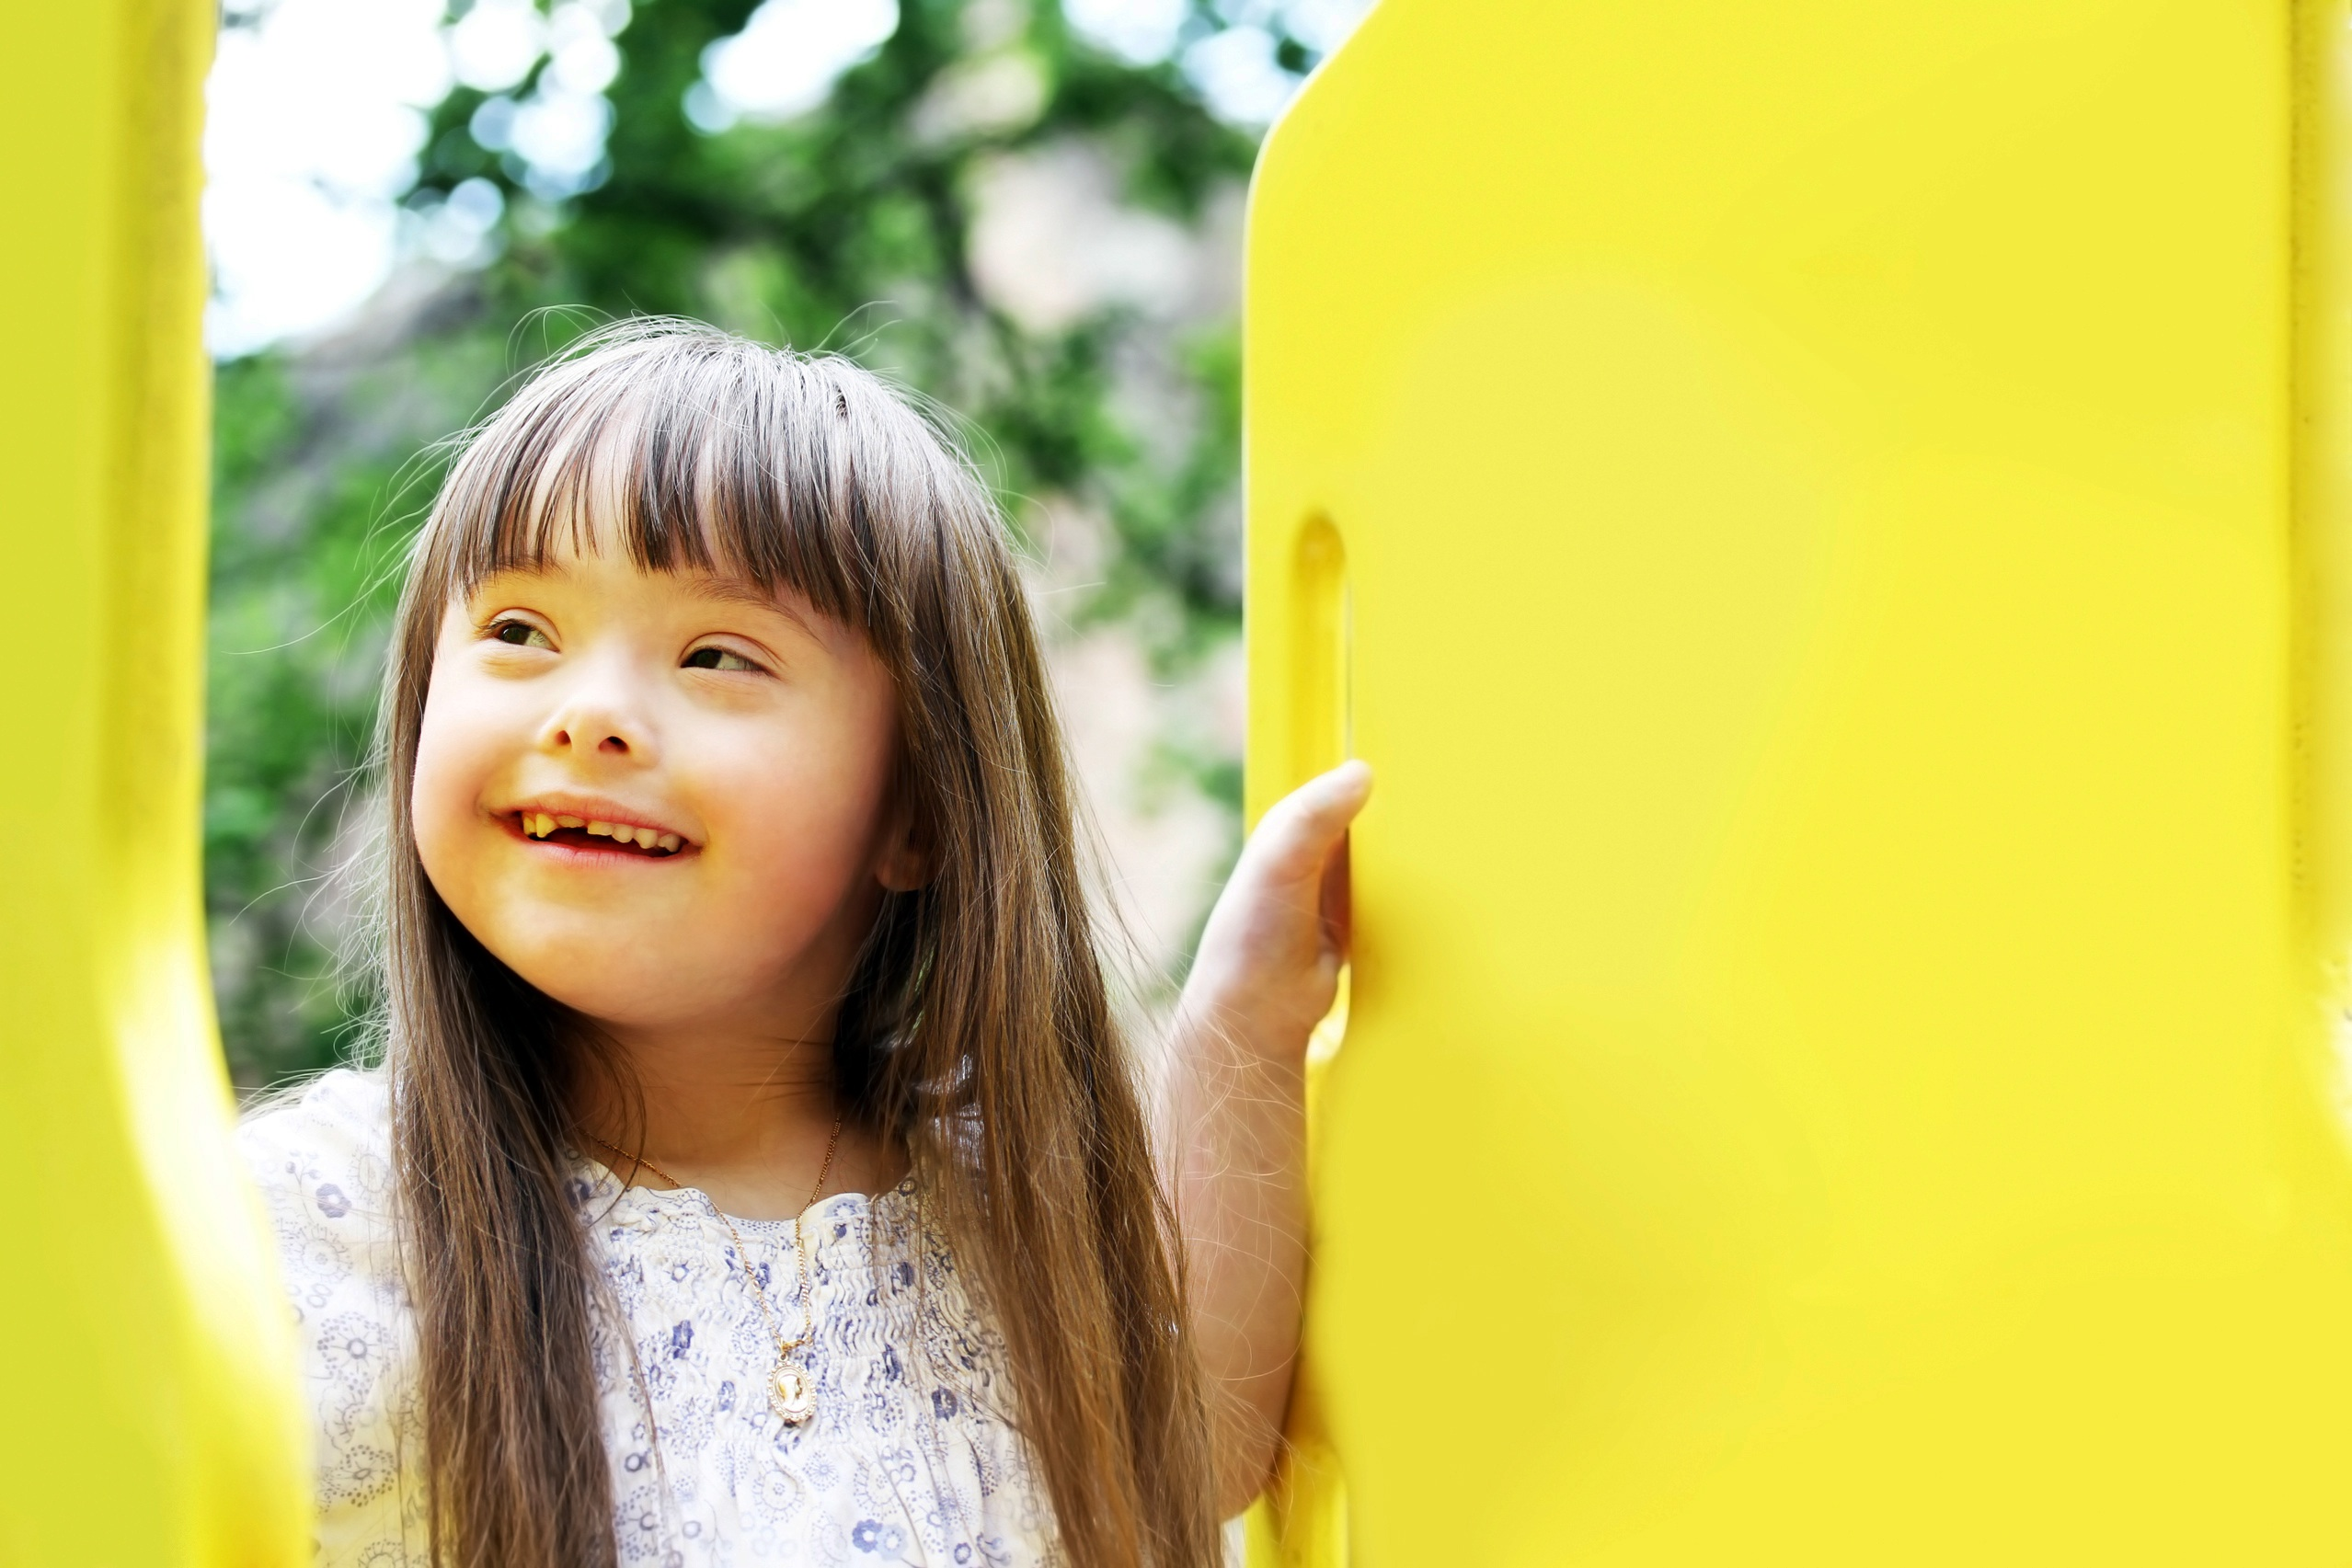 Downs syndrome girl on playground